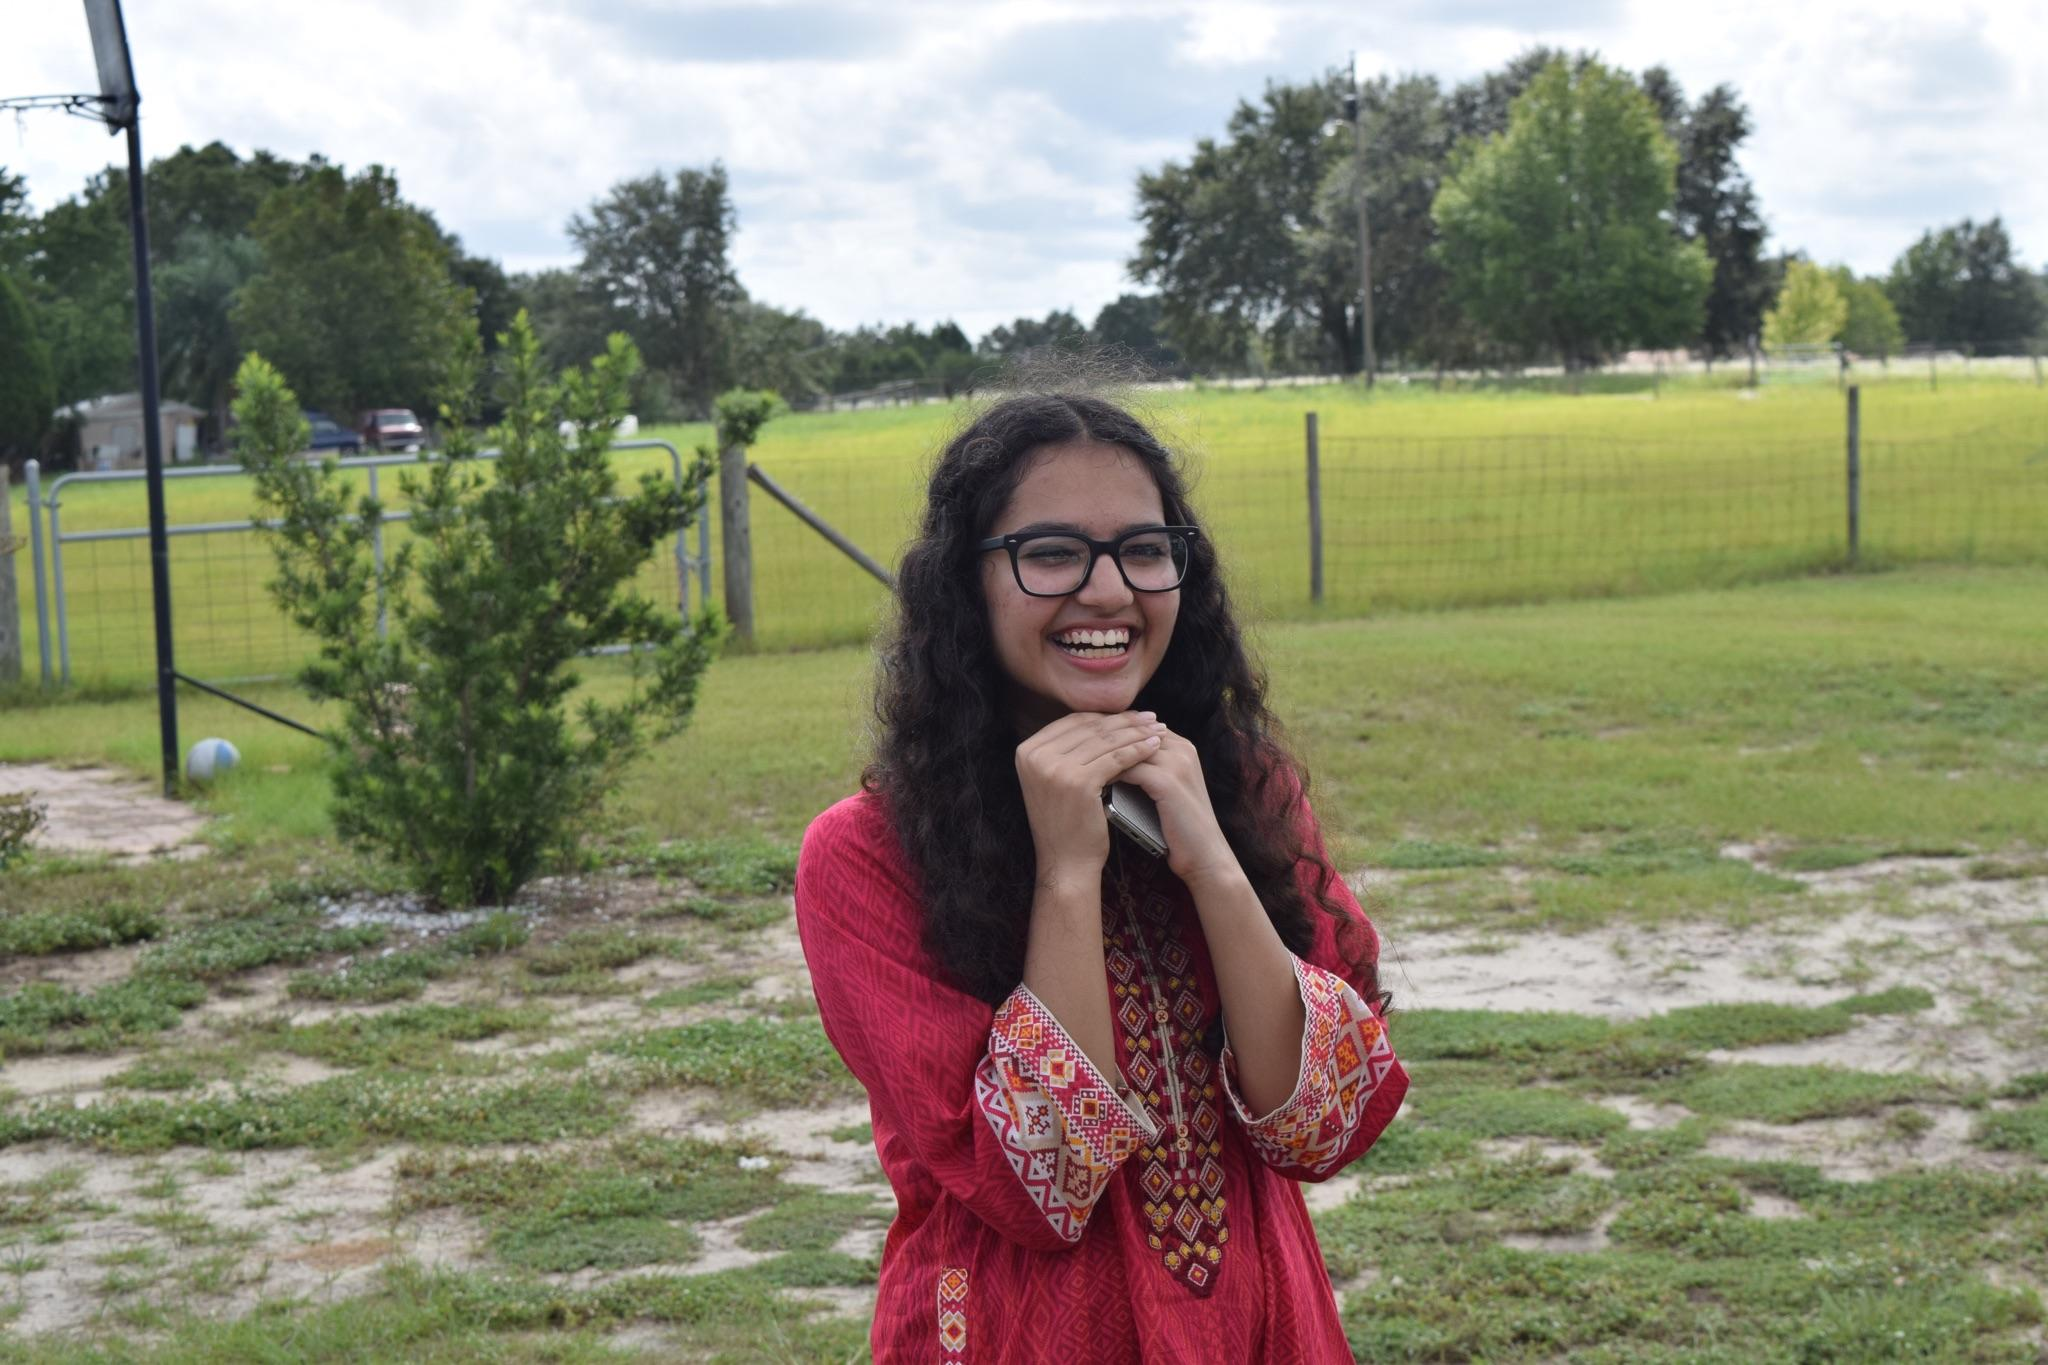 Quintessentially American: Meet Hajra from Pakistan